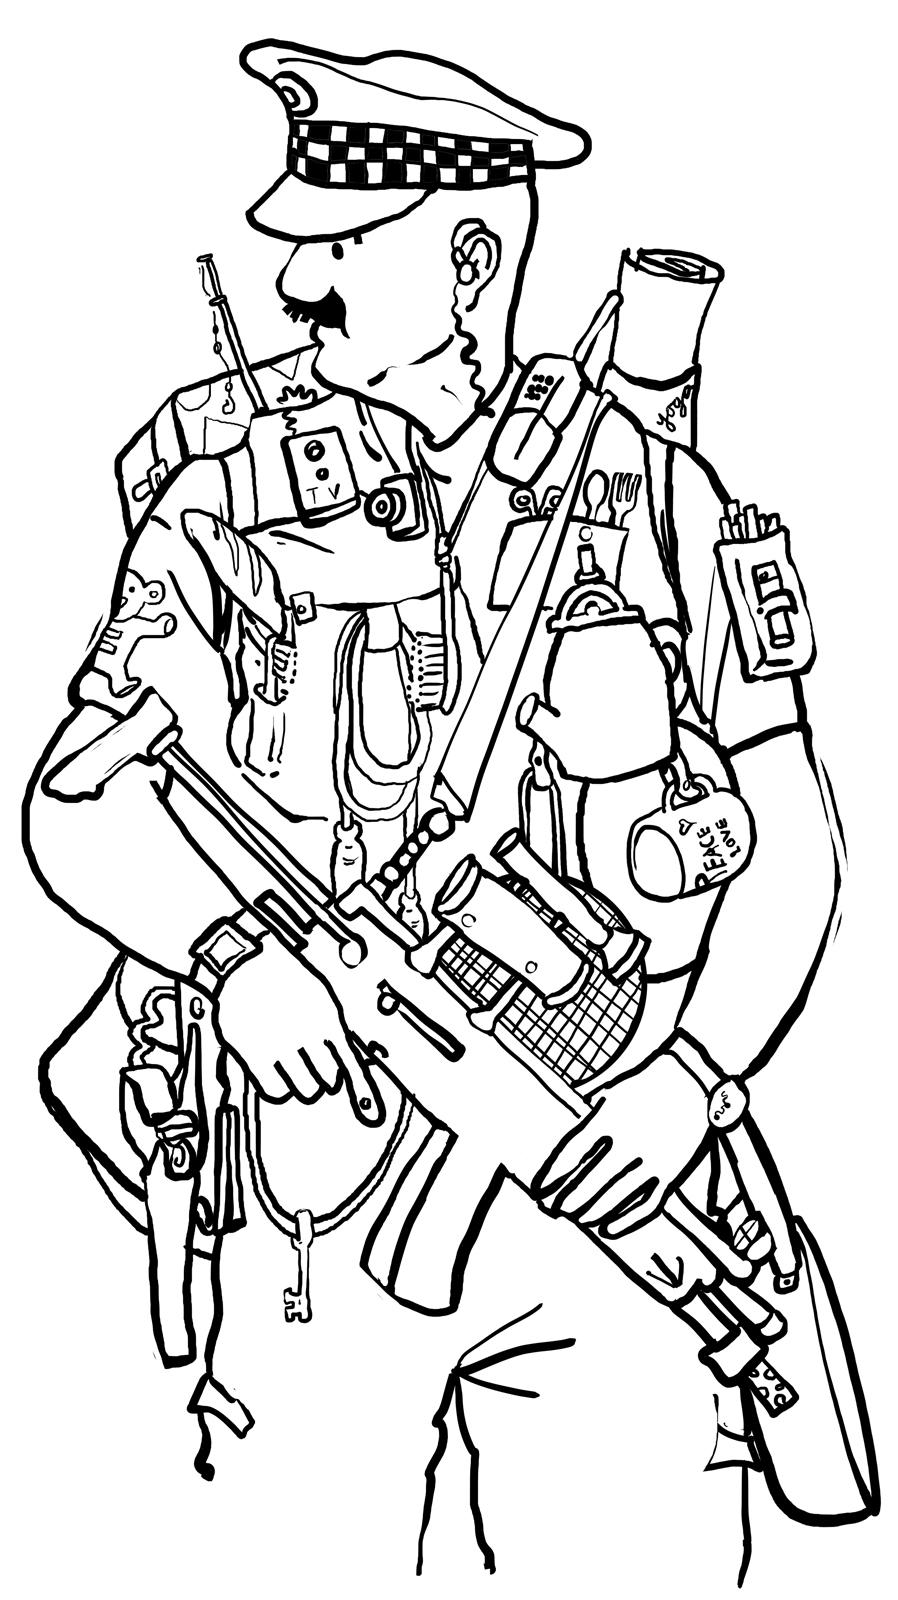 Police Drawing at GetDrawings.com | Free for personal use Police ...